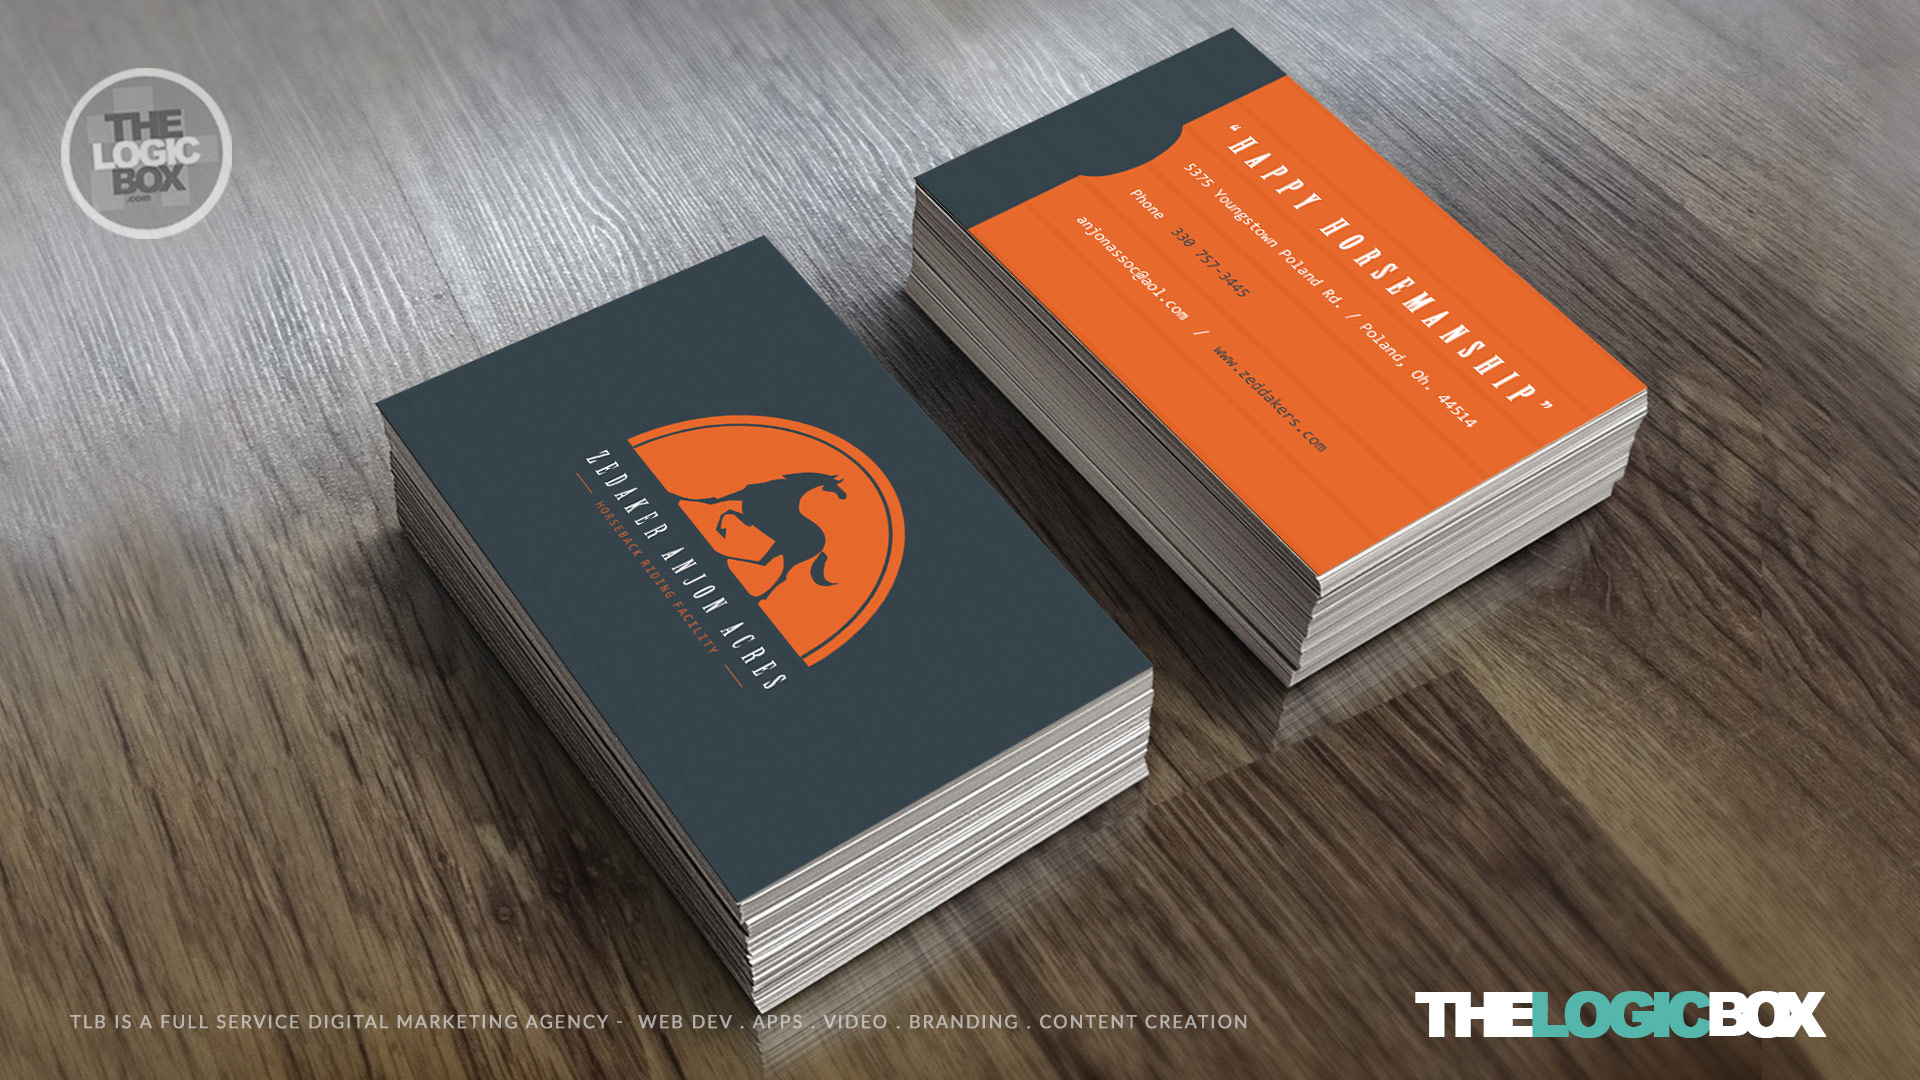 Business-Card-the-logic-box-agency-5-zedaker-anjon-acres